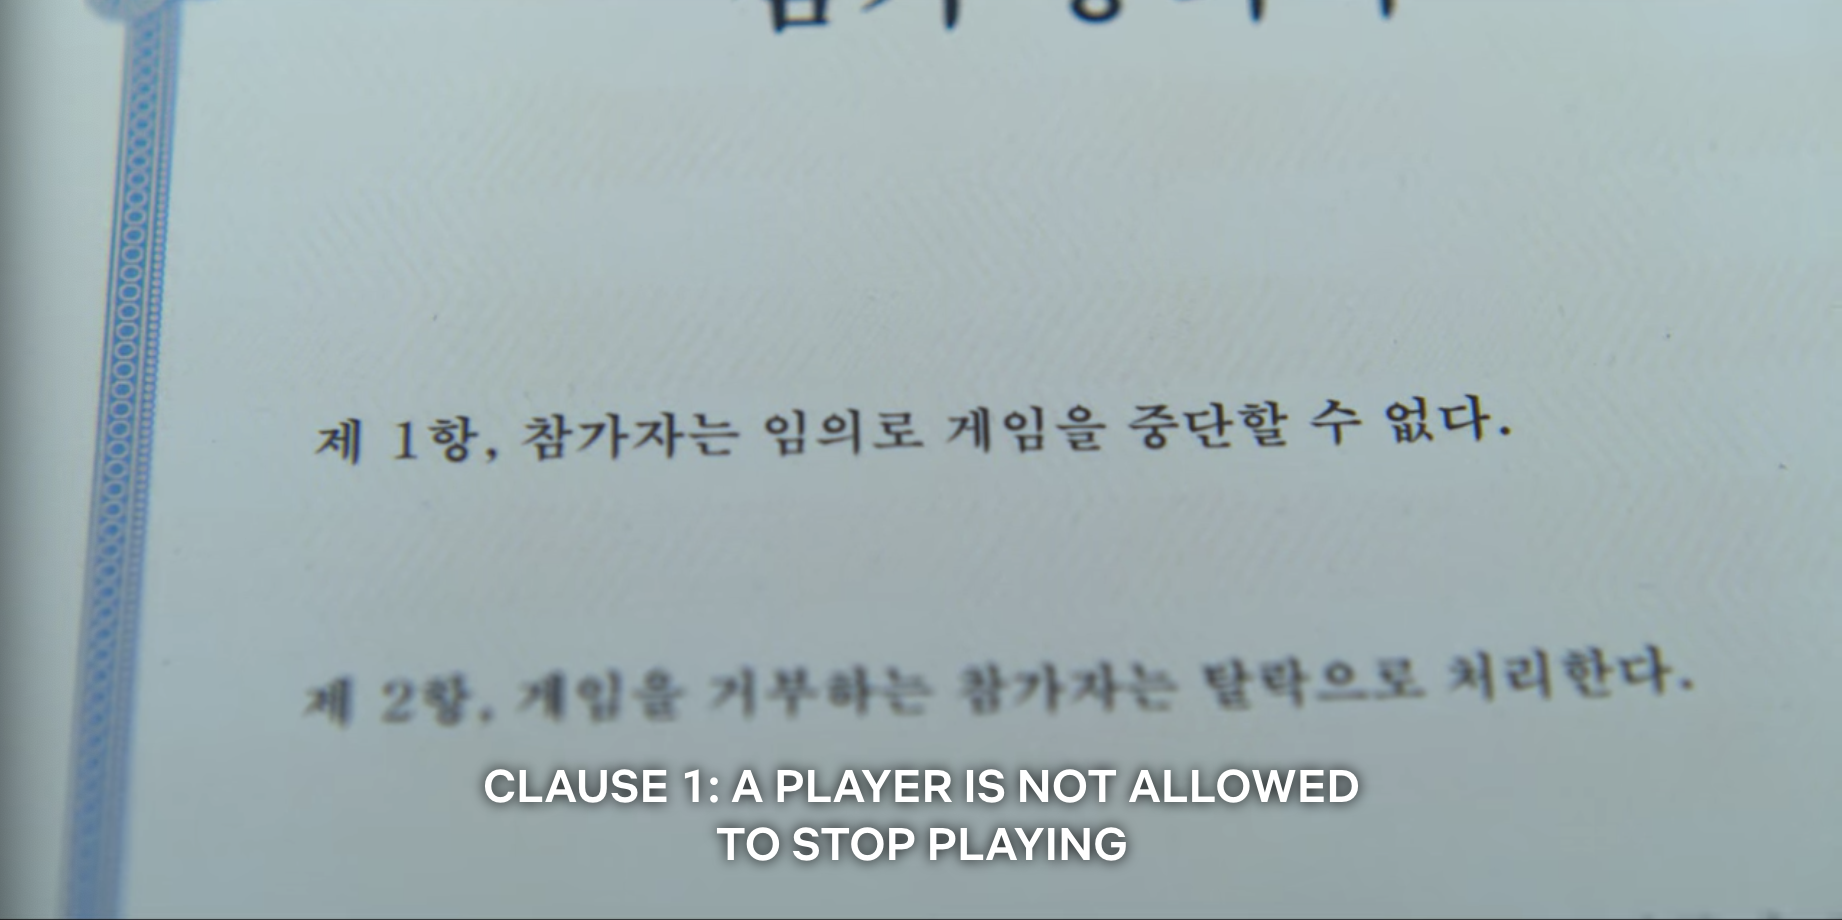 A closeup of a contract that says Clause 1: a player is not allowed to stop playing